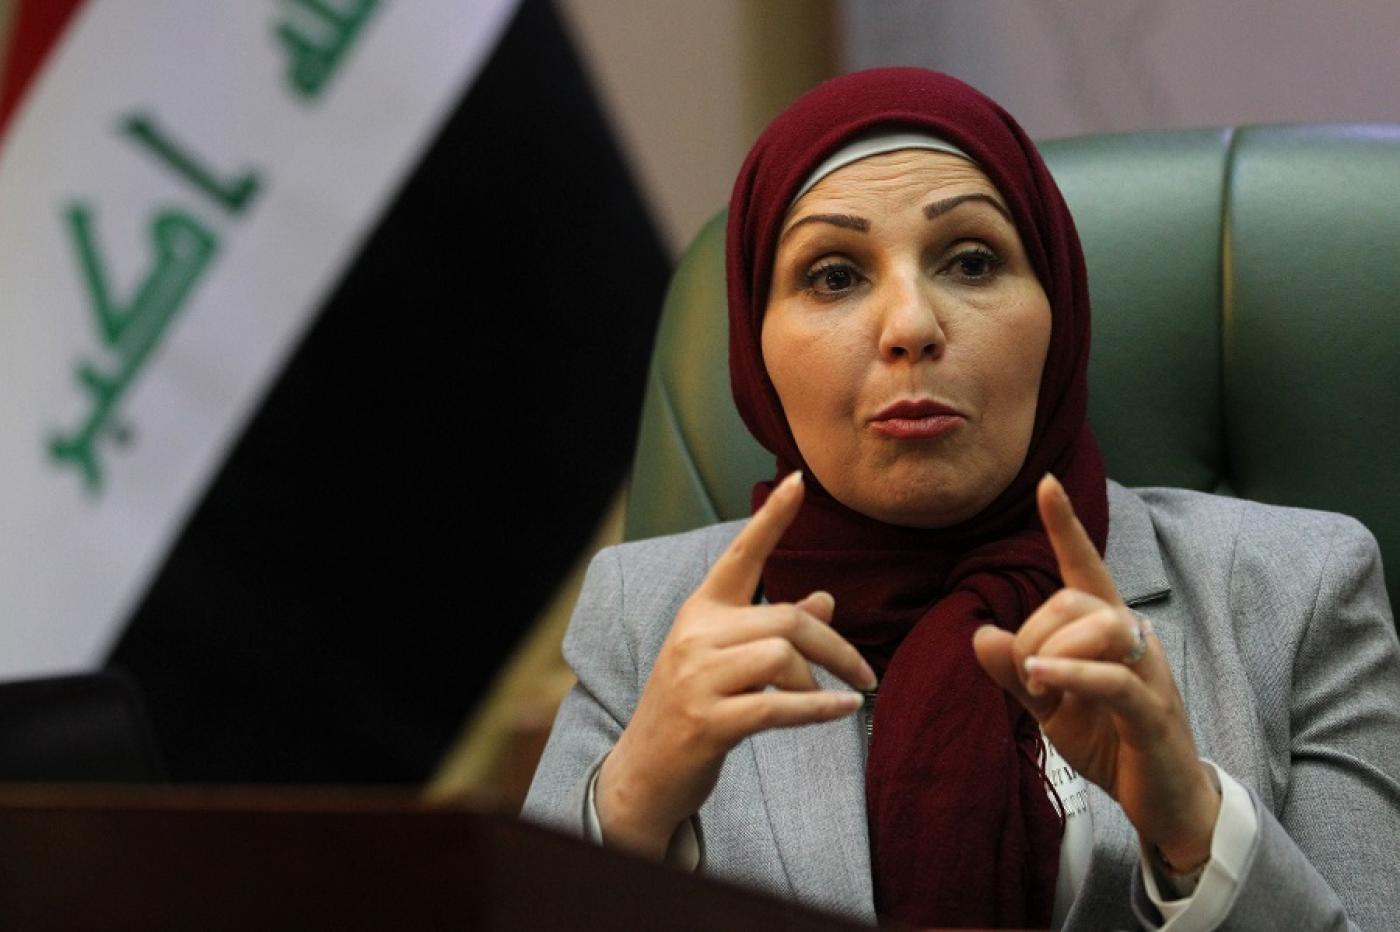 Baghdad mayor has ambitious plans for her city: 'We are on